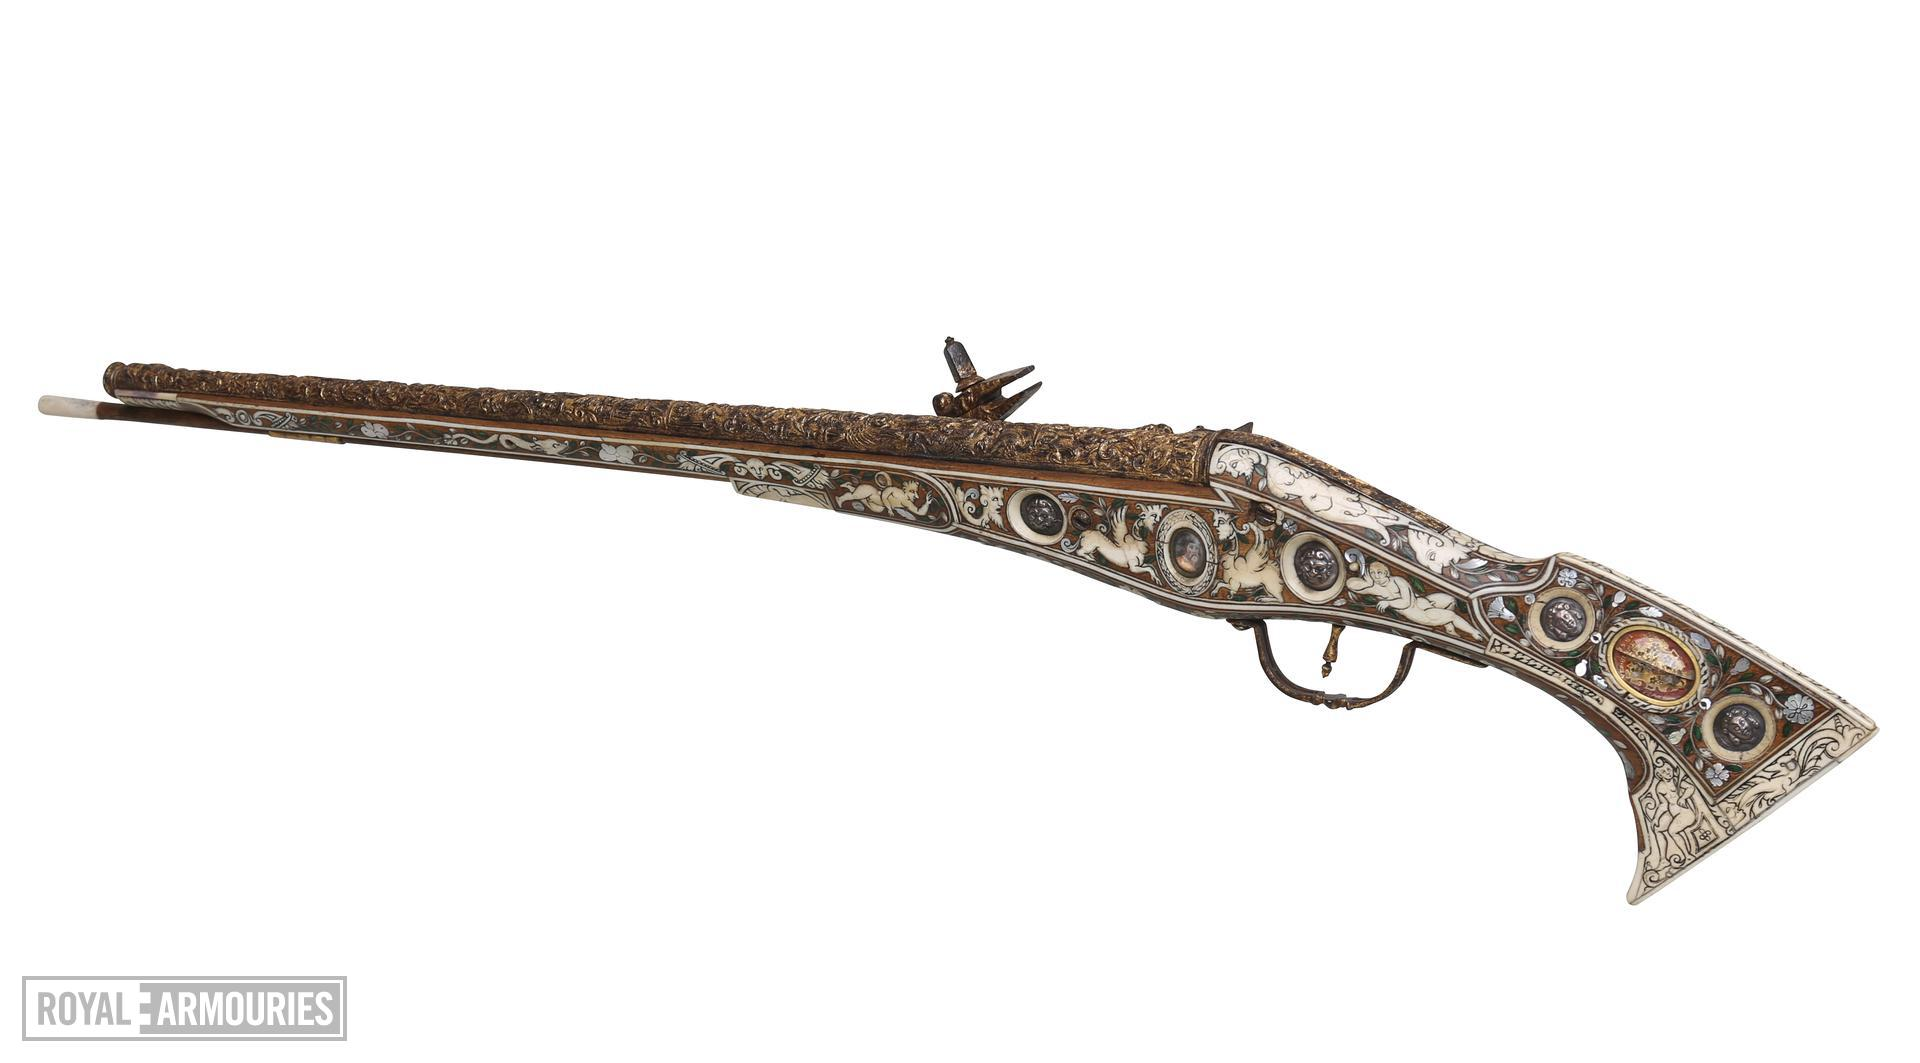 Wheellock pistol known as the 'Forget-me-not' pistol. XII.1764